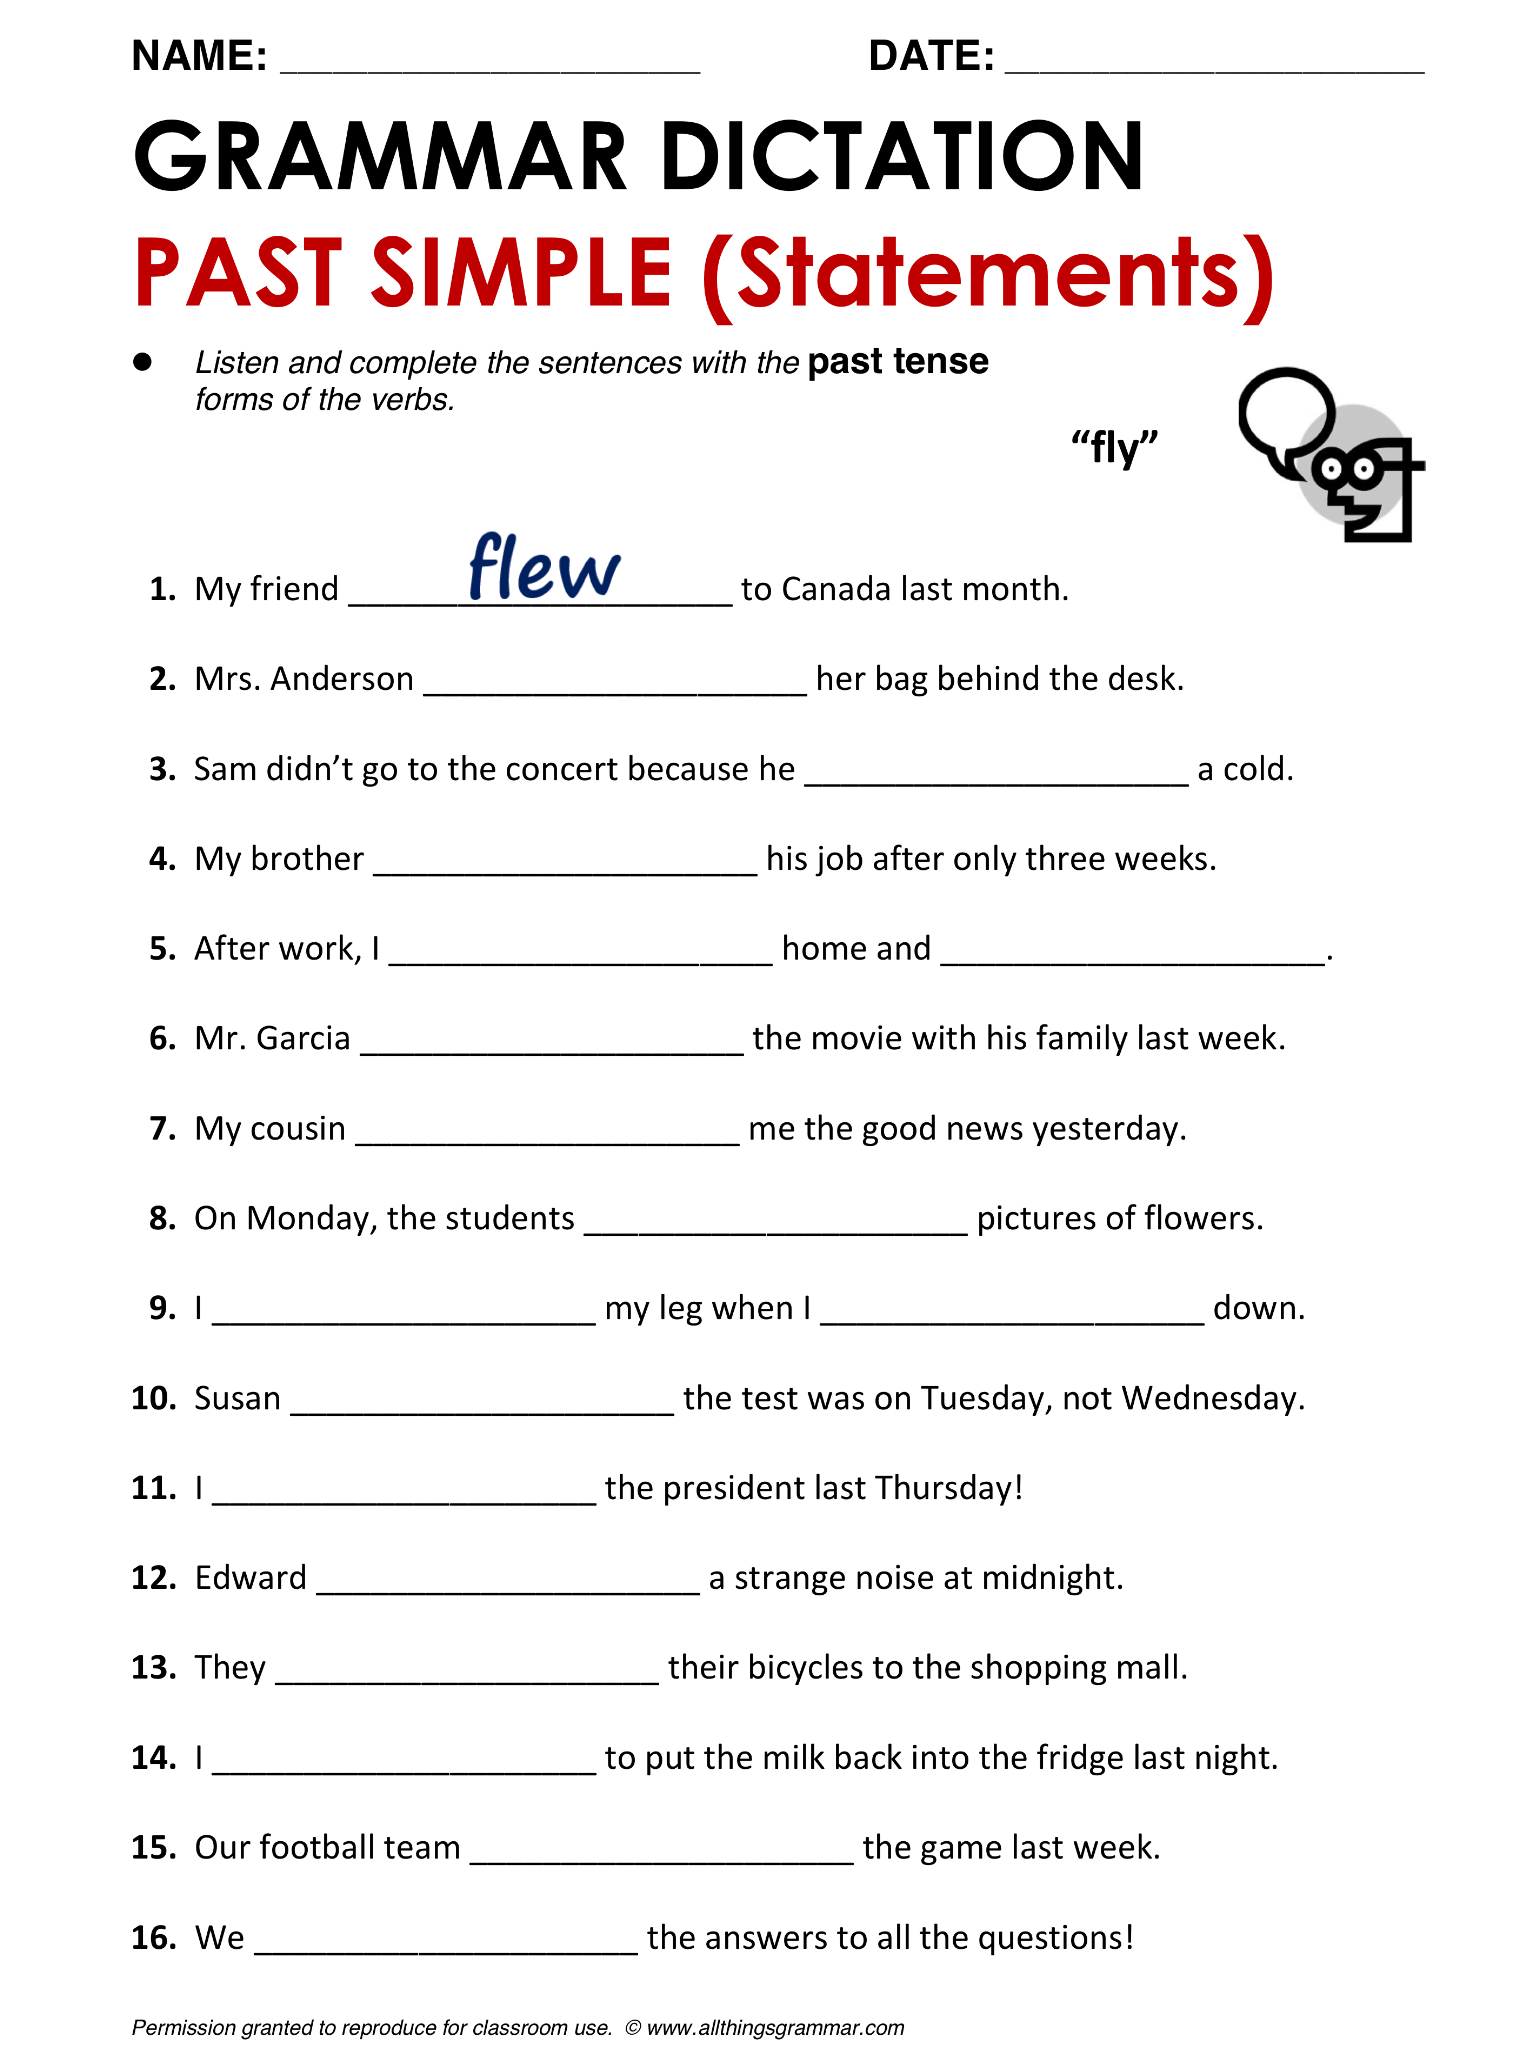 English Grammar Past Simple past simple